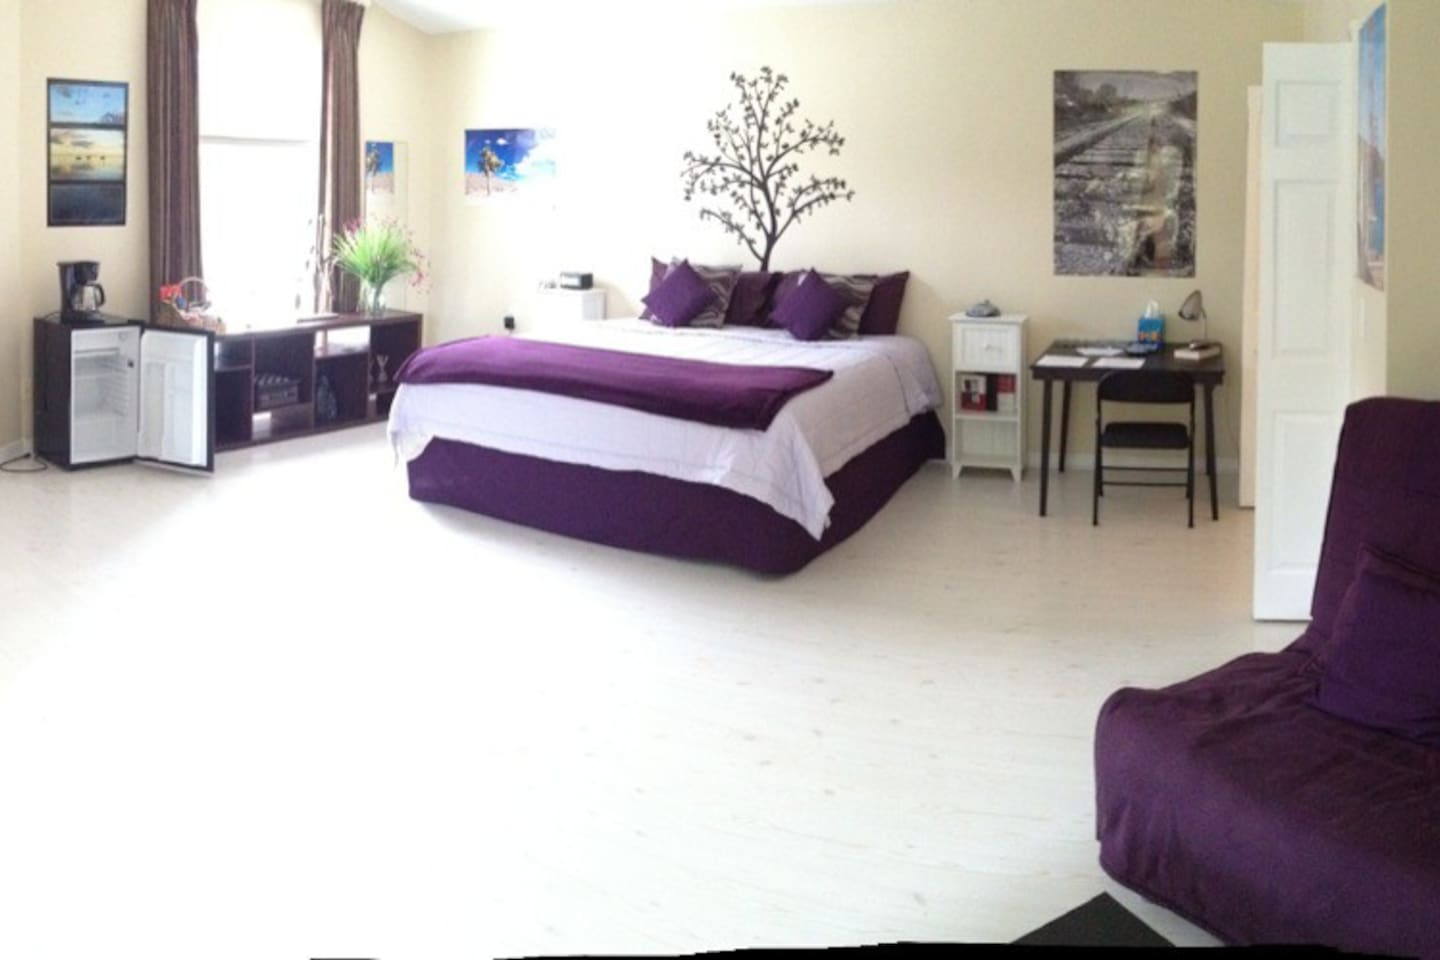 Panorama picture of the 600 sqft mother-in-law suite